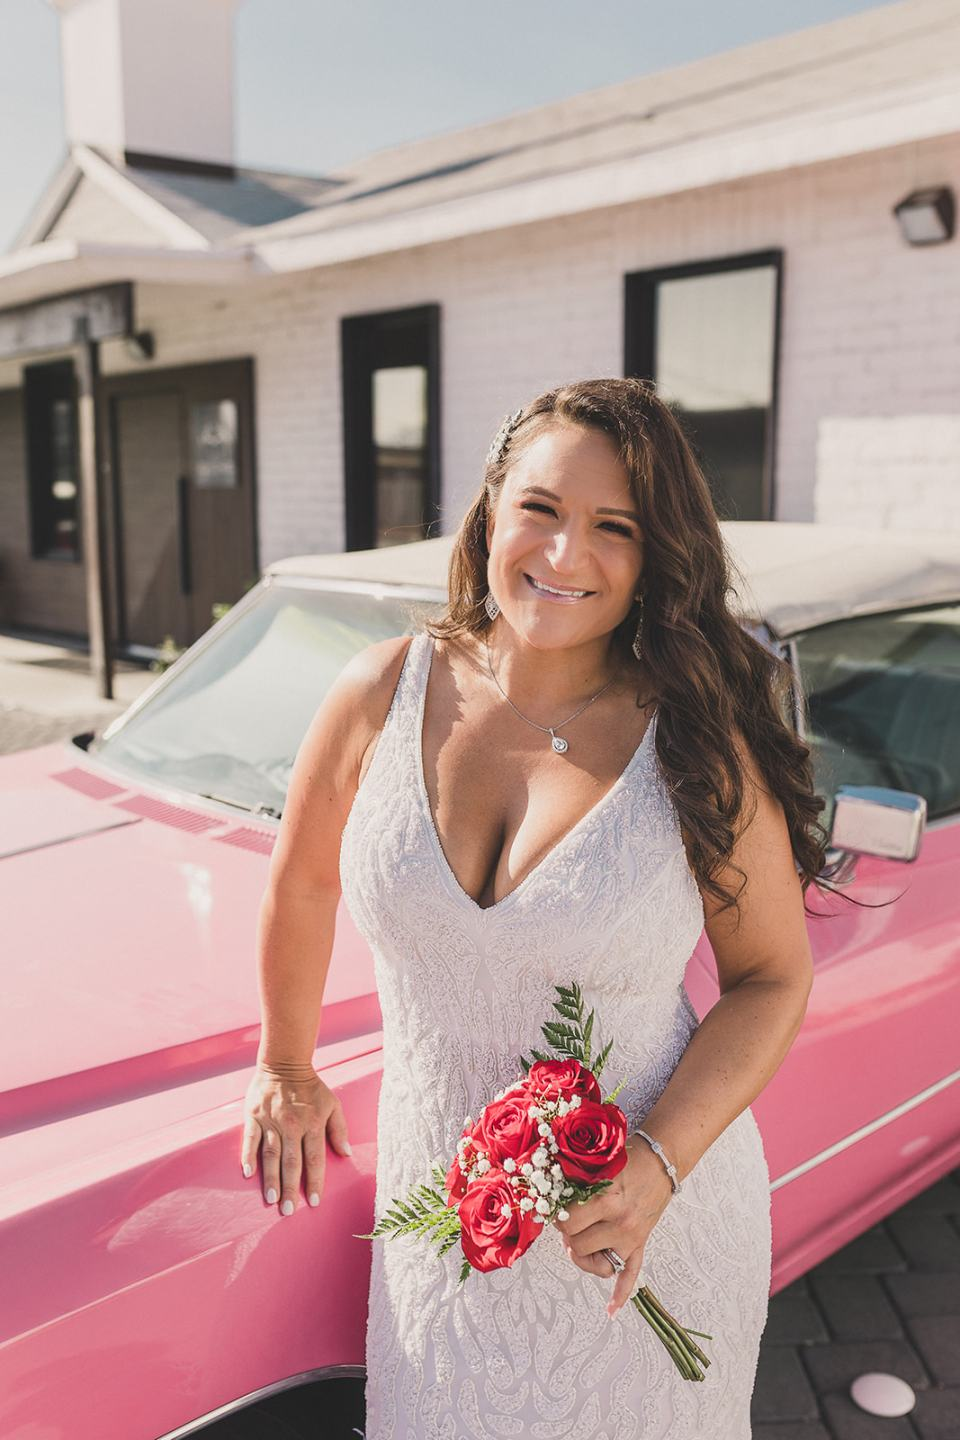 bride poses by pink Cadillac